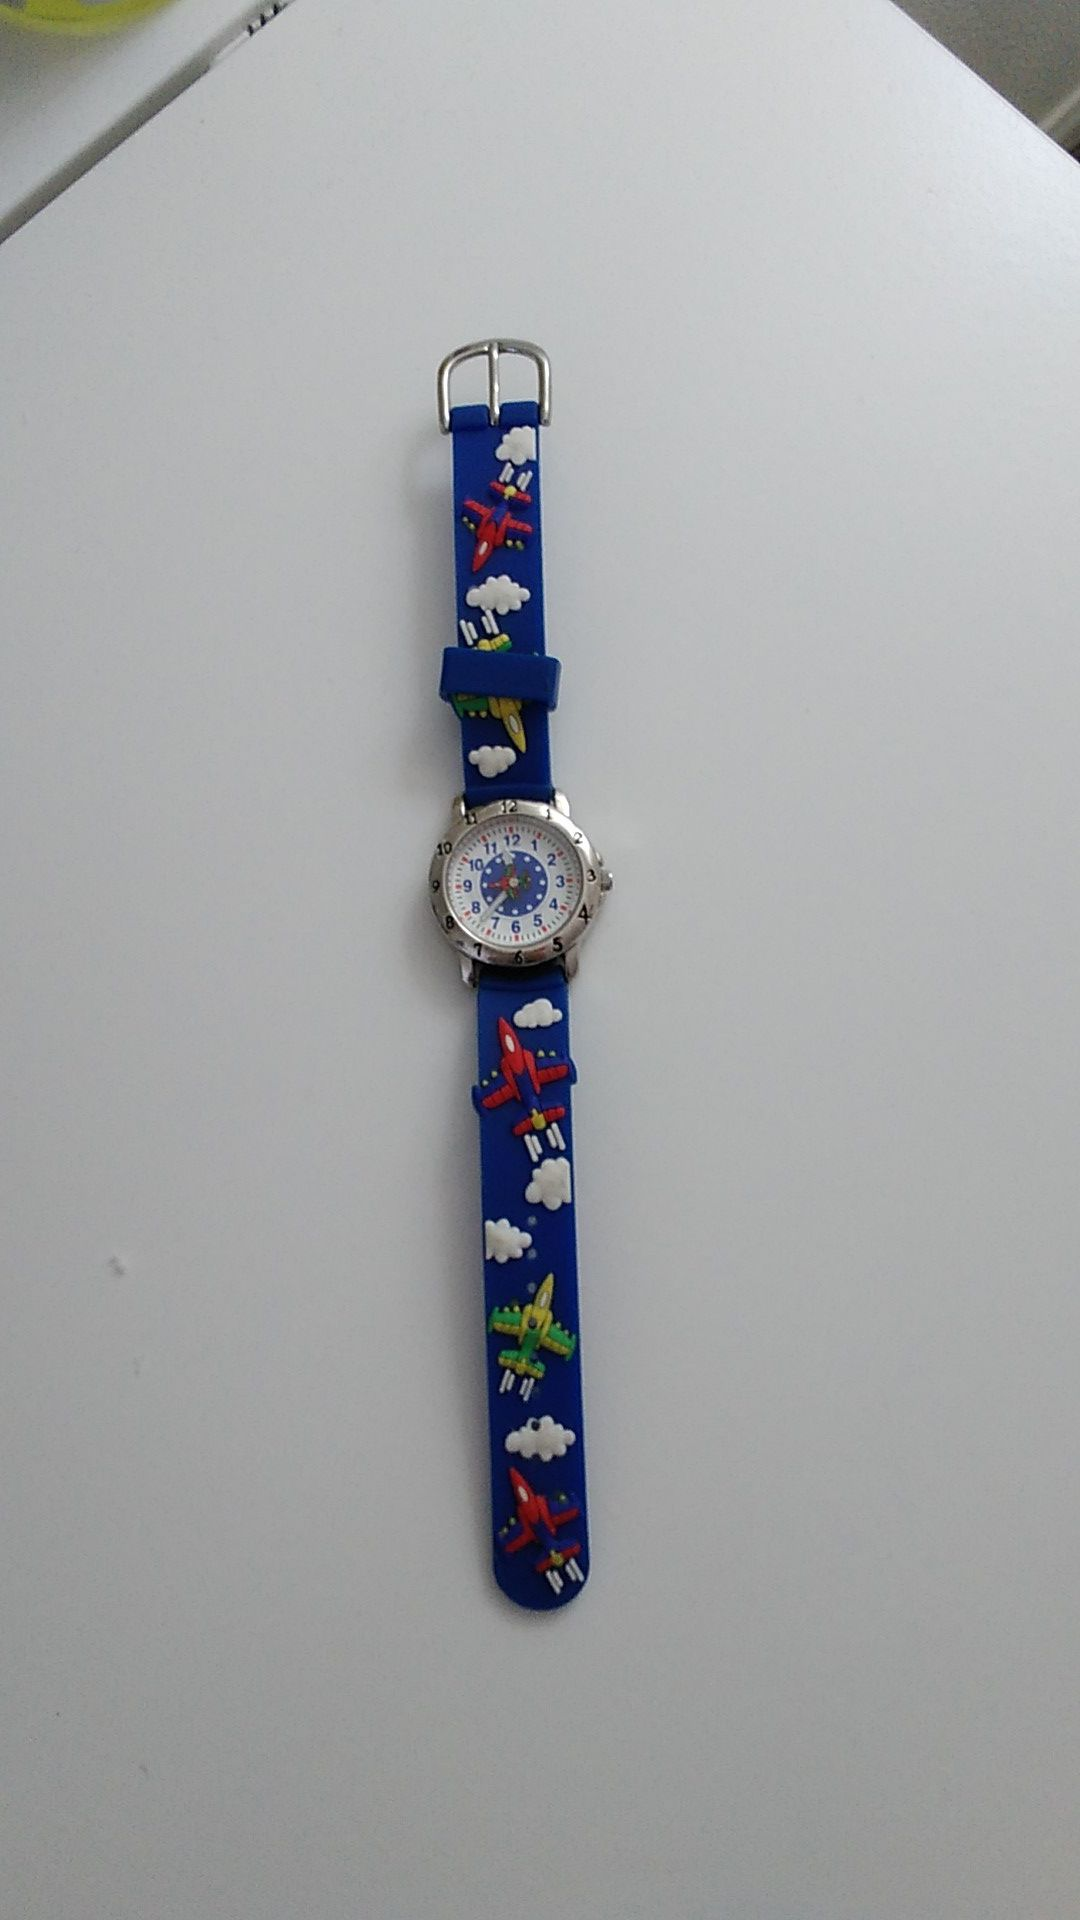 Child's watch. Needs battery. Only $10.